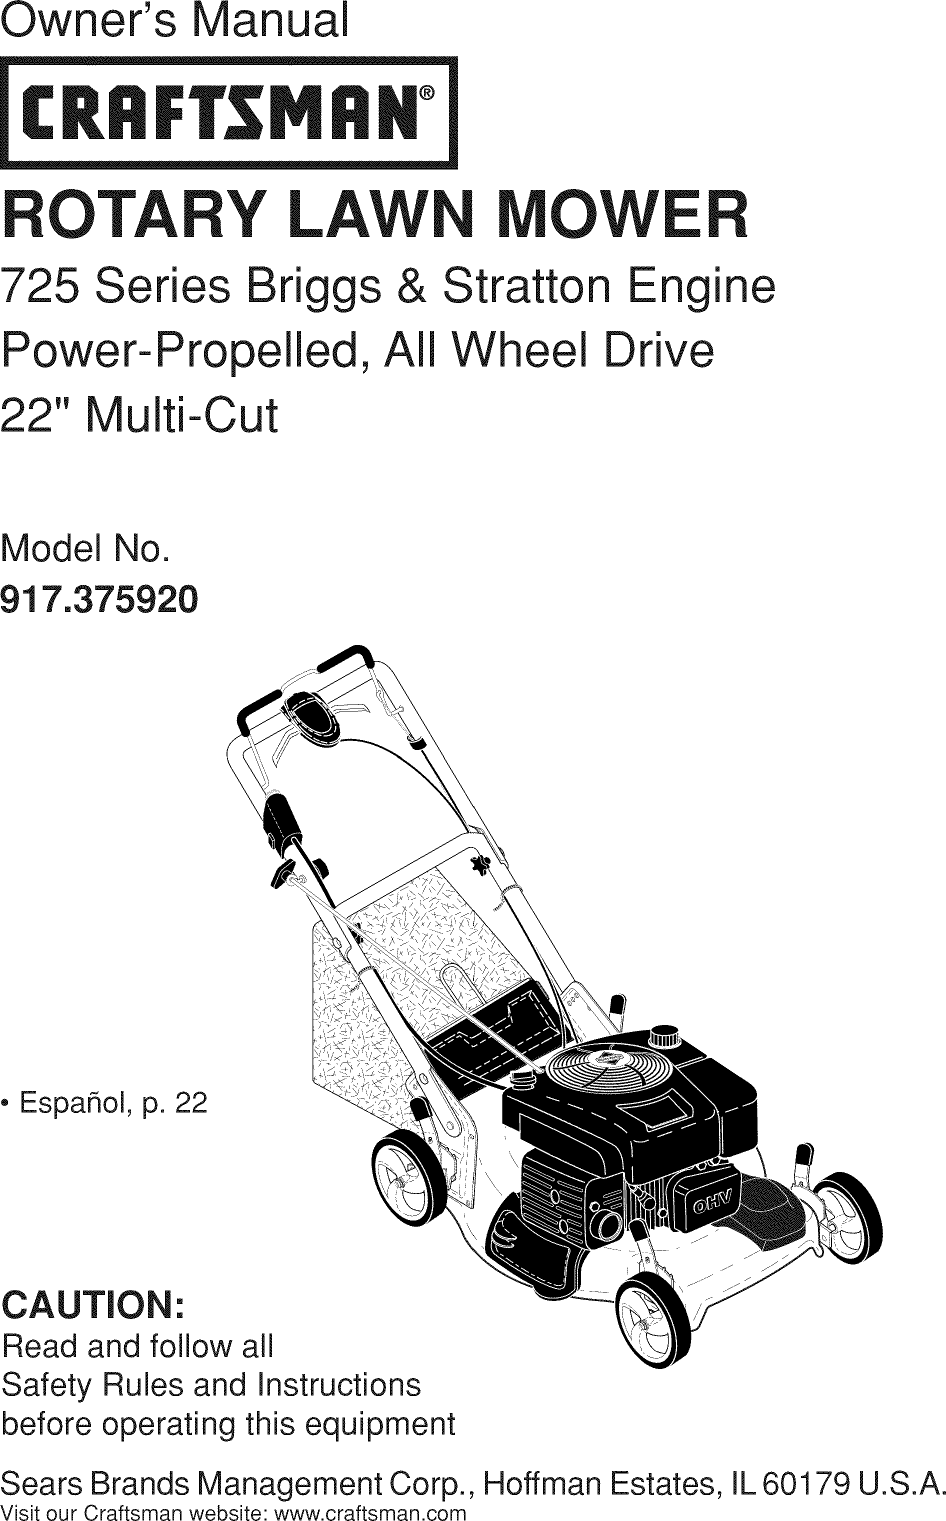 Craftsman 917375920 User Manual LAWN MOWER Manuals And